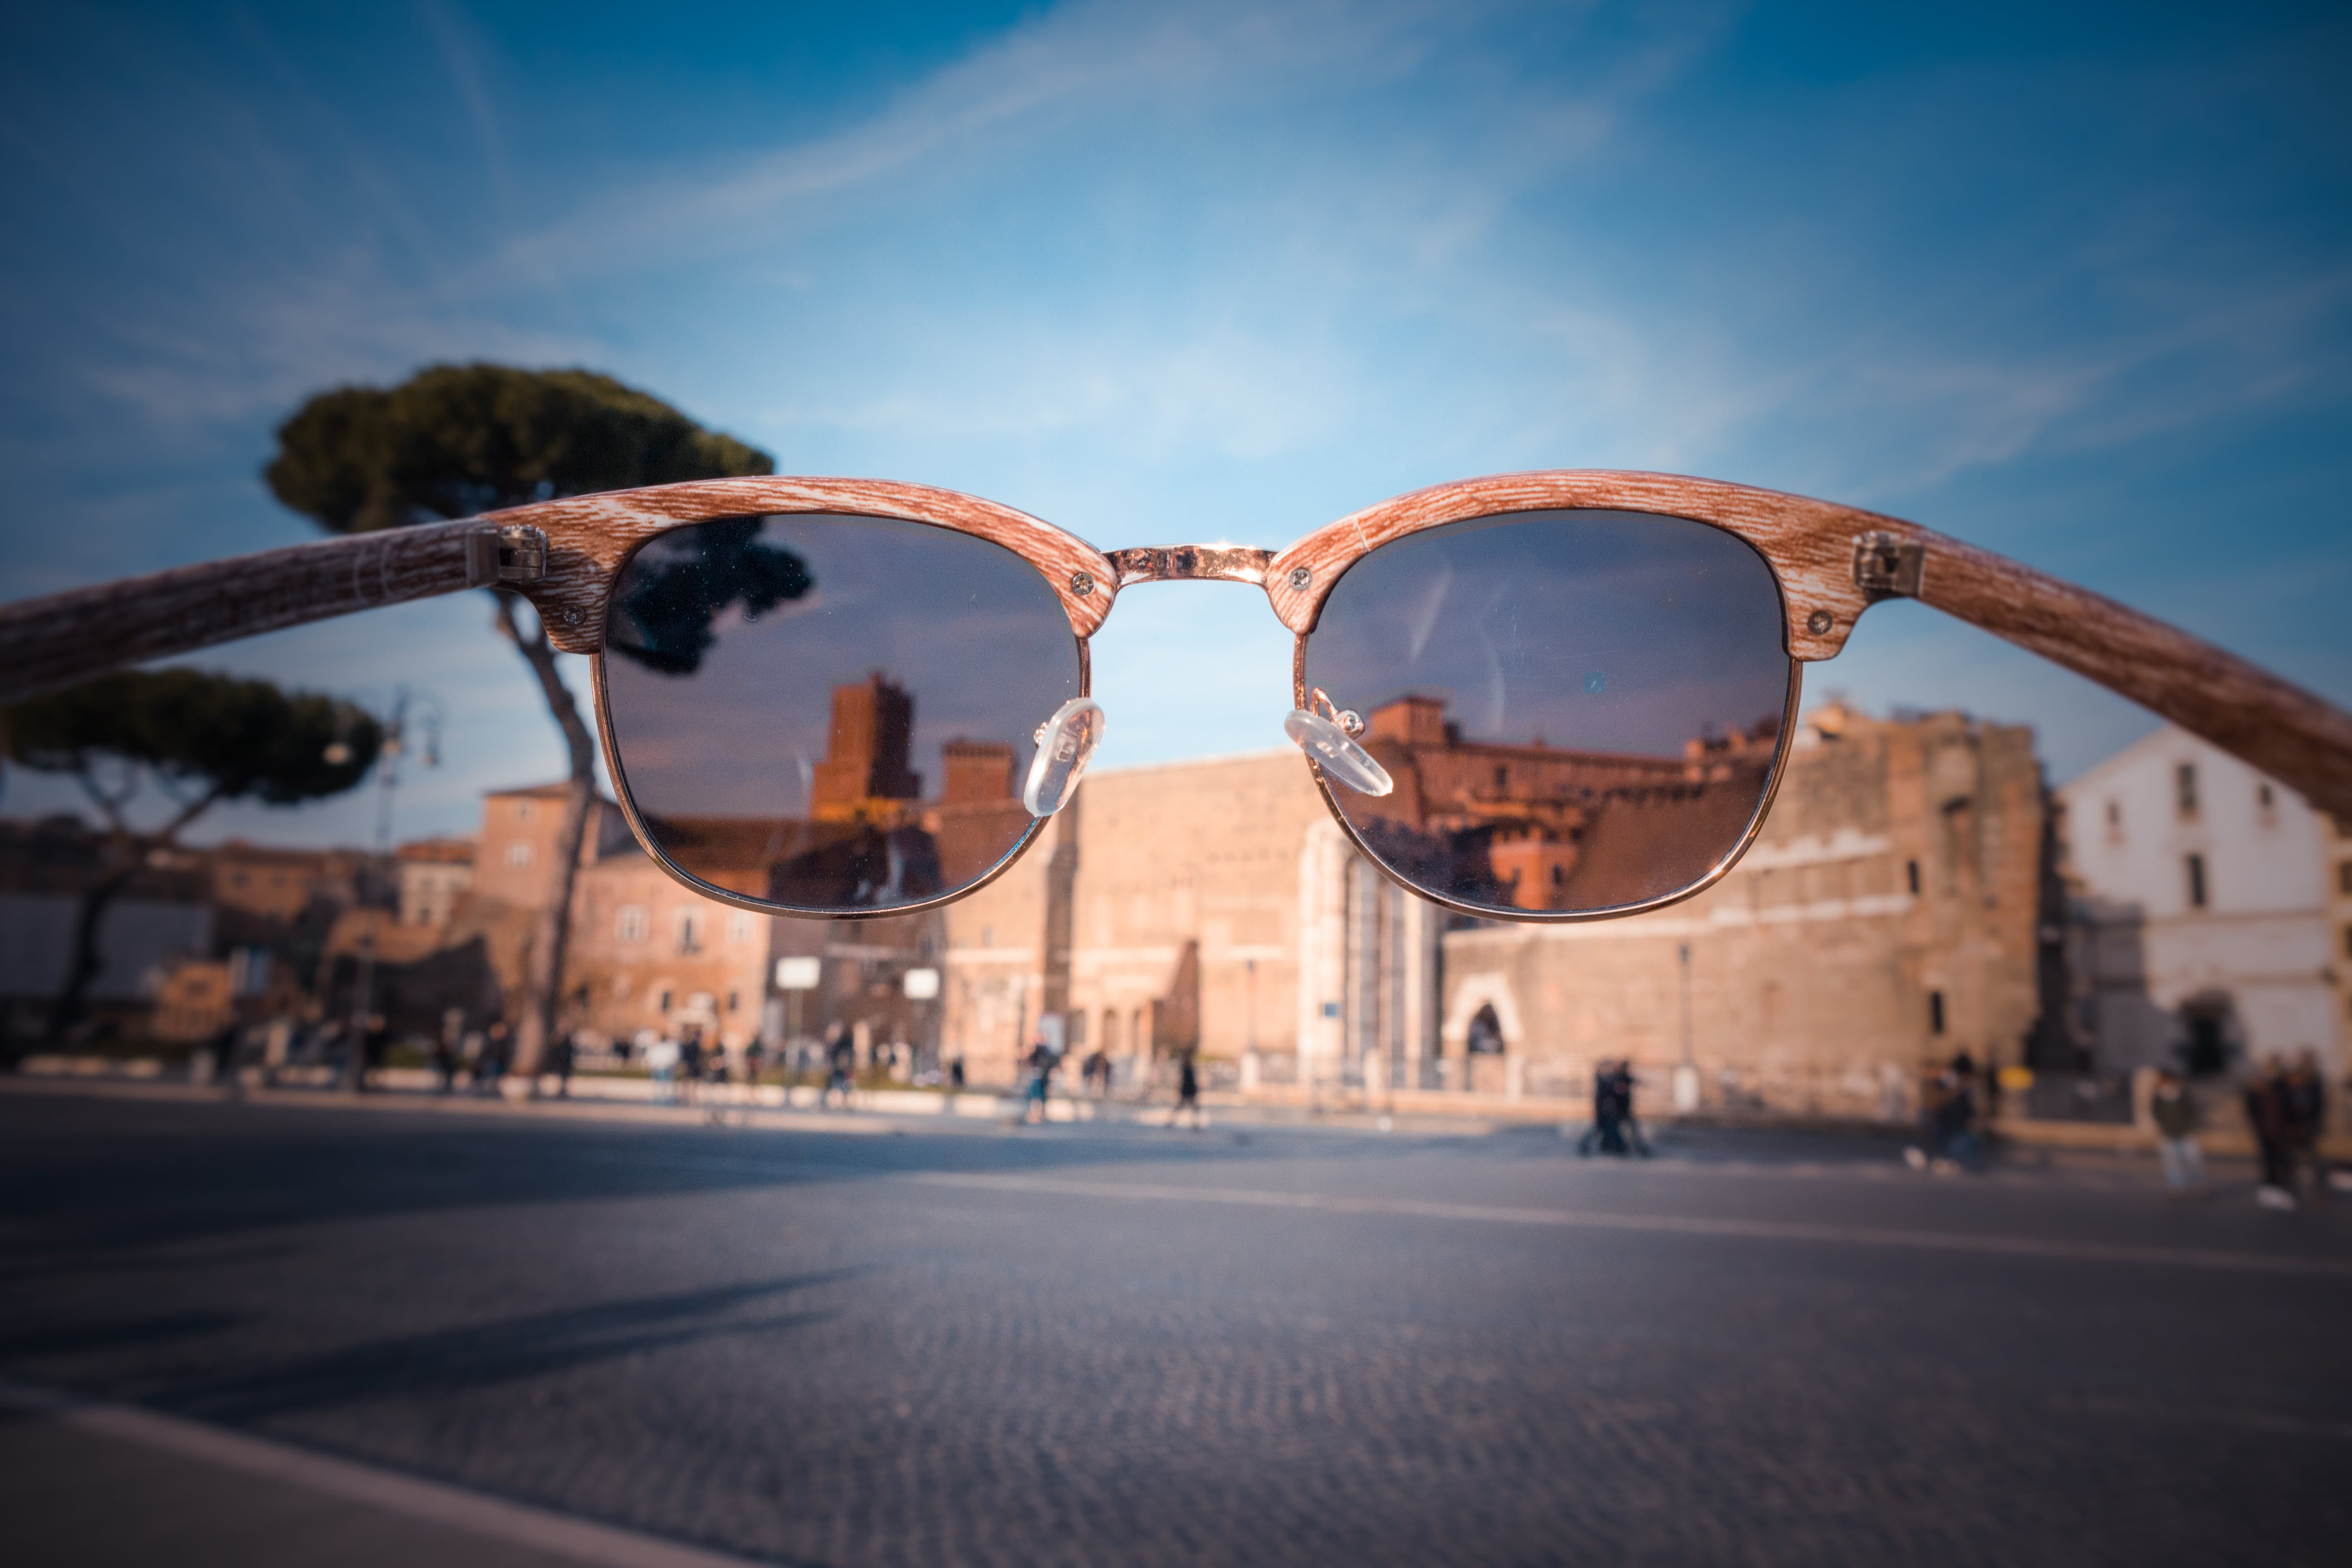 Sunglasses View Brown Building